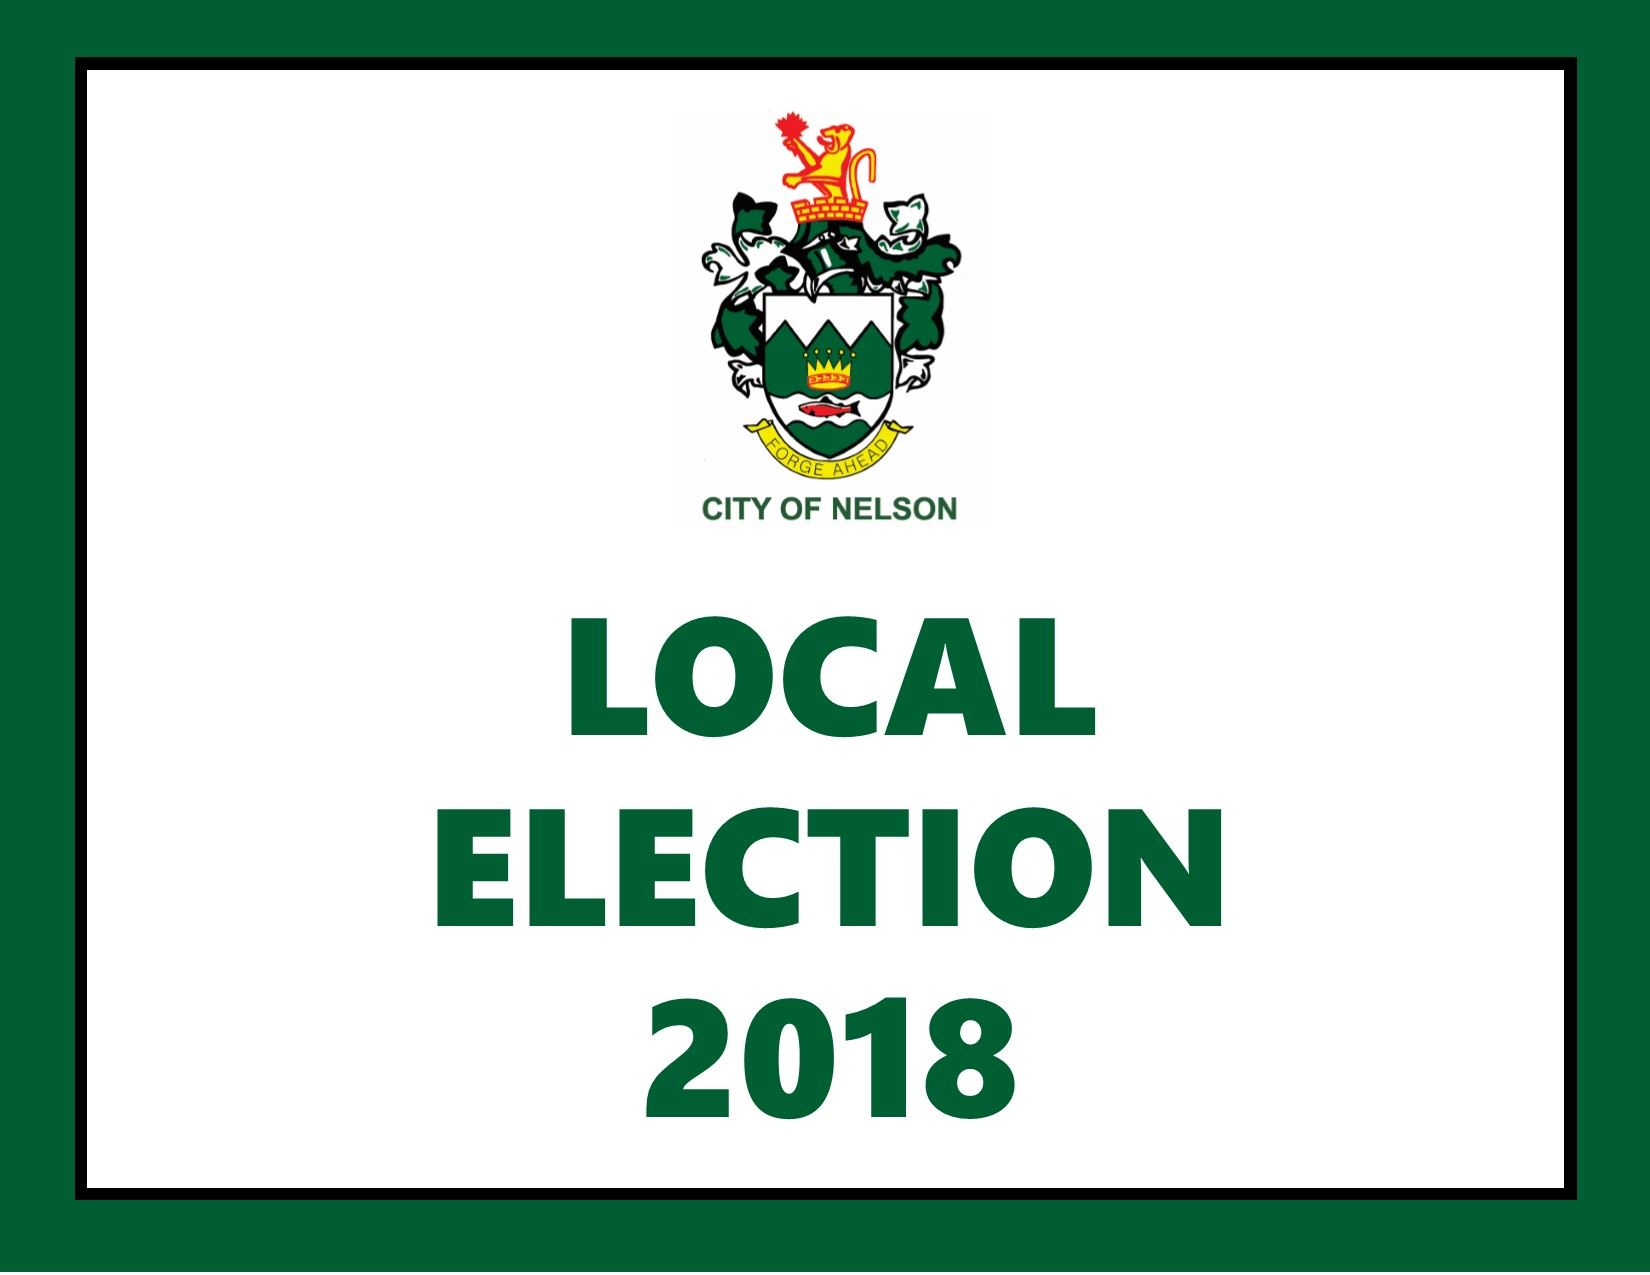 Main Election 2018